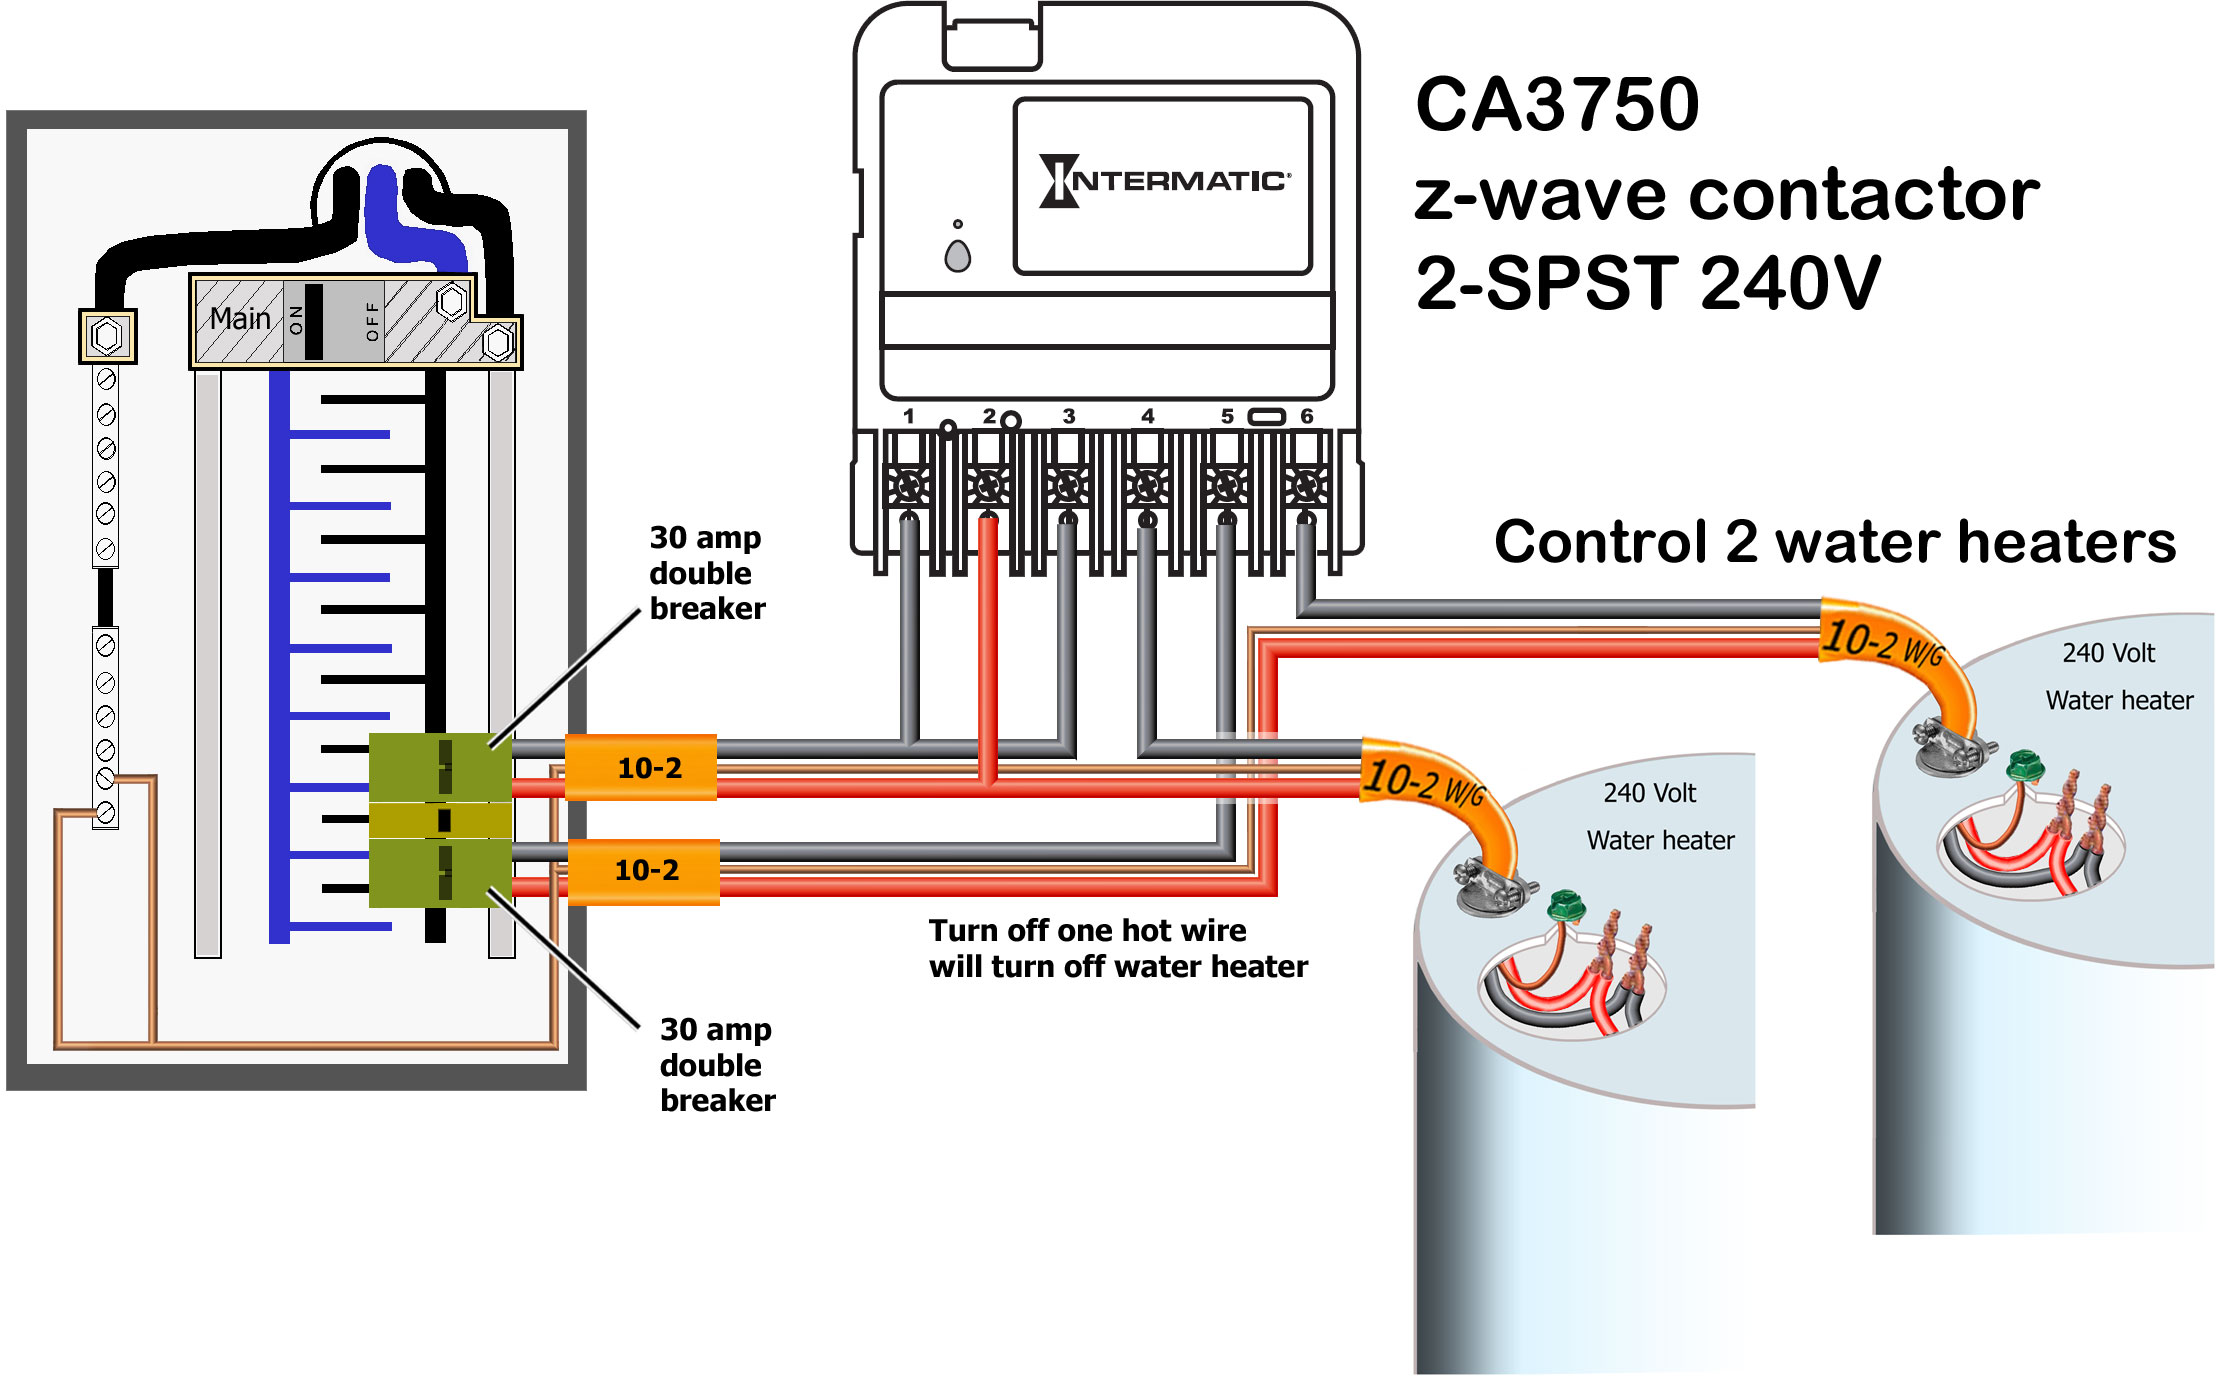 Ca 3750 Wiring Diagram Pool Starting Know About Rj31x Block How To Wire Intermatic Ca3750 Rh Waterheatertimer Org